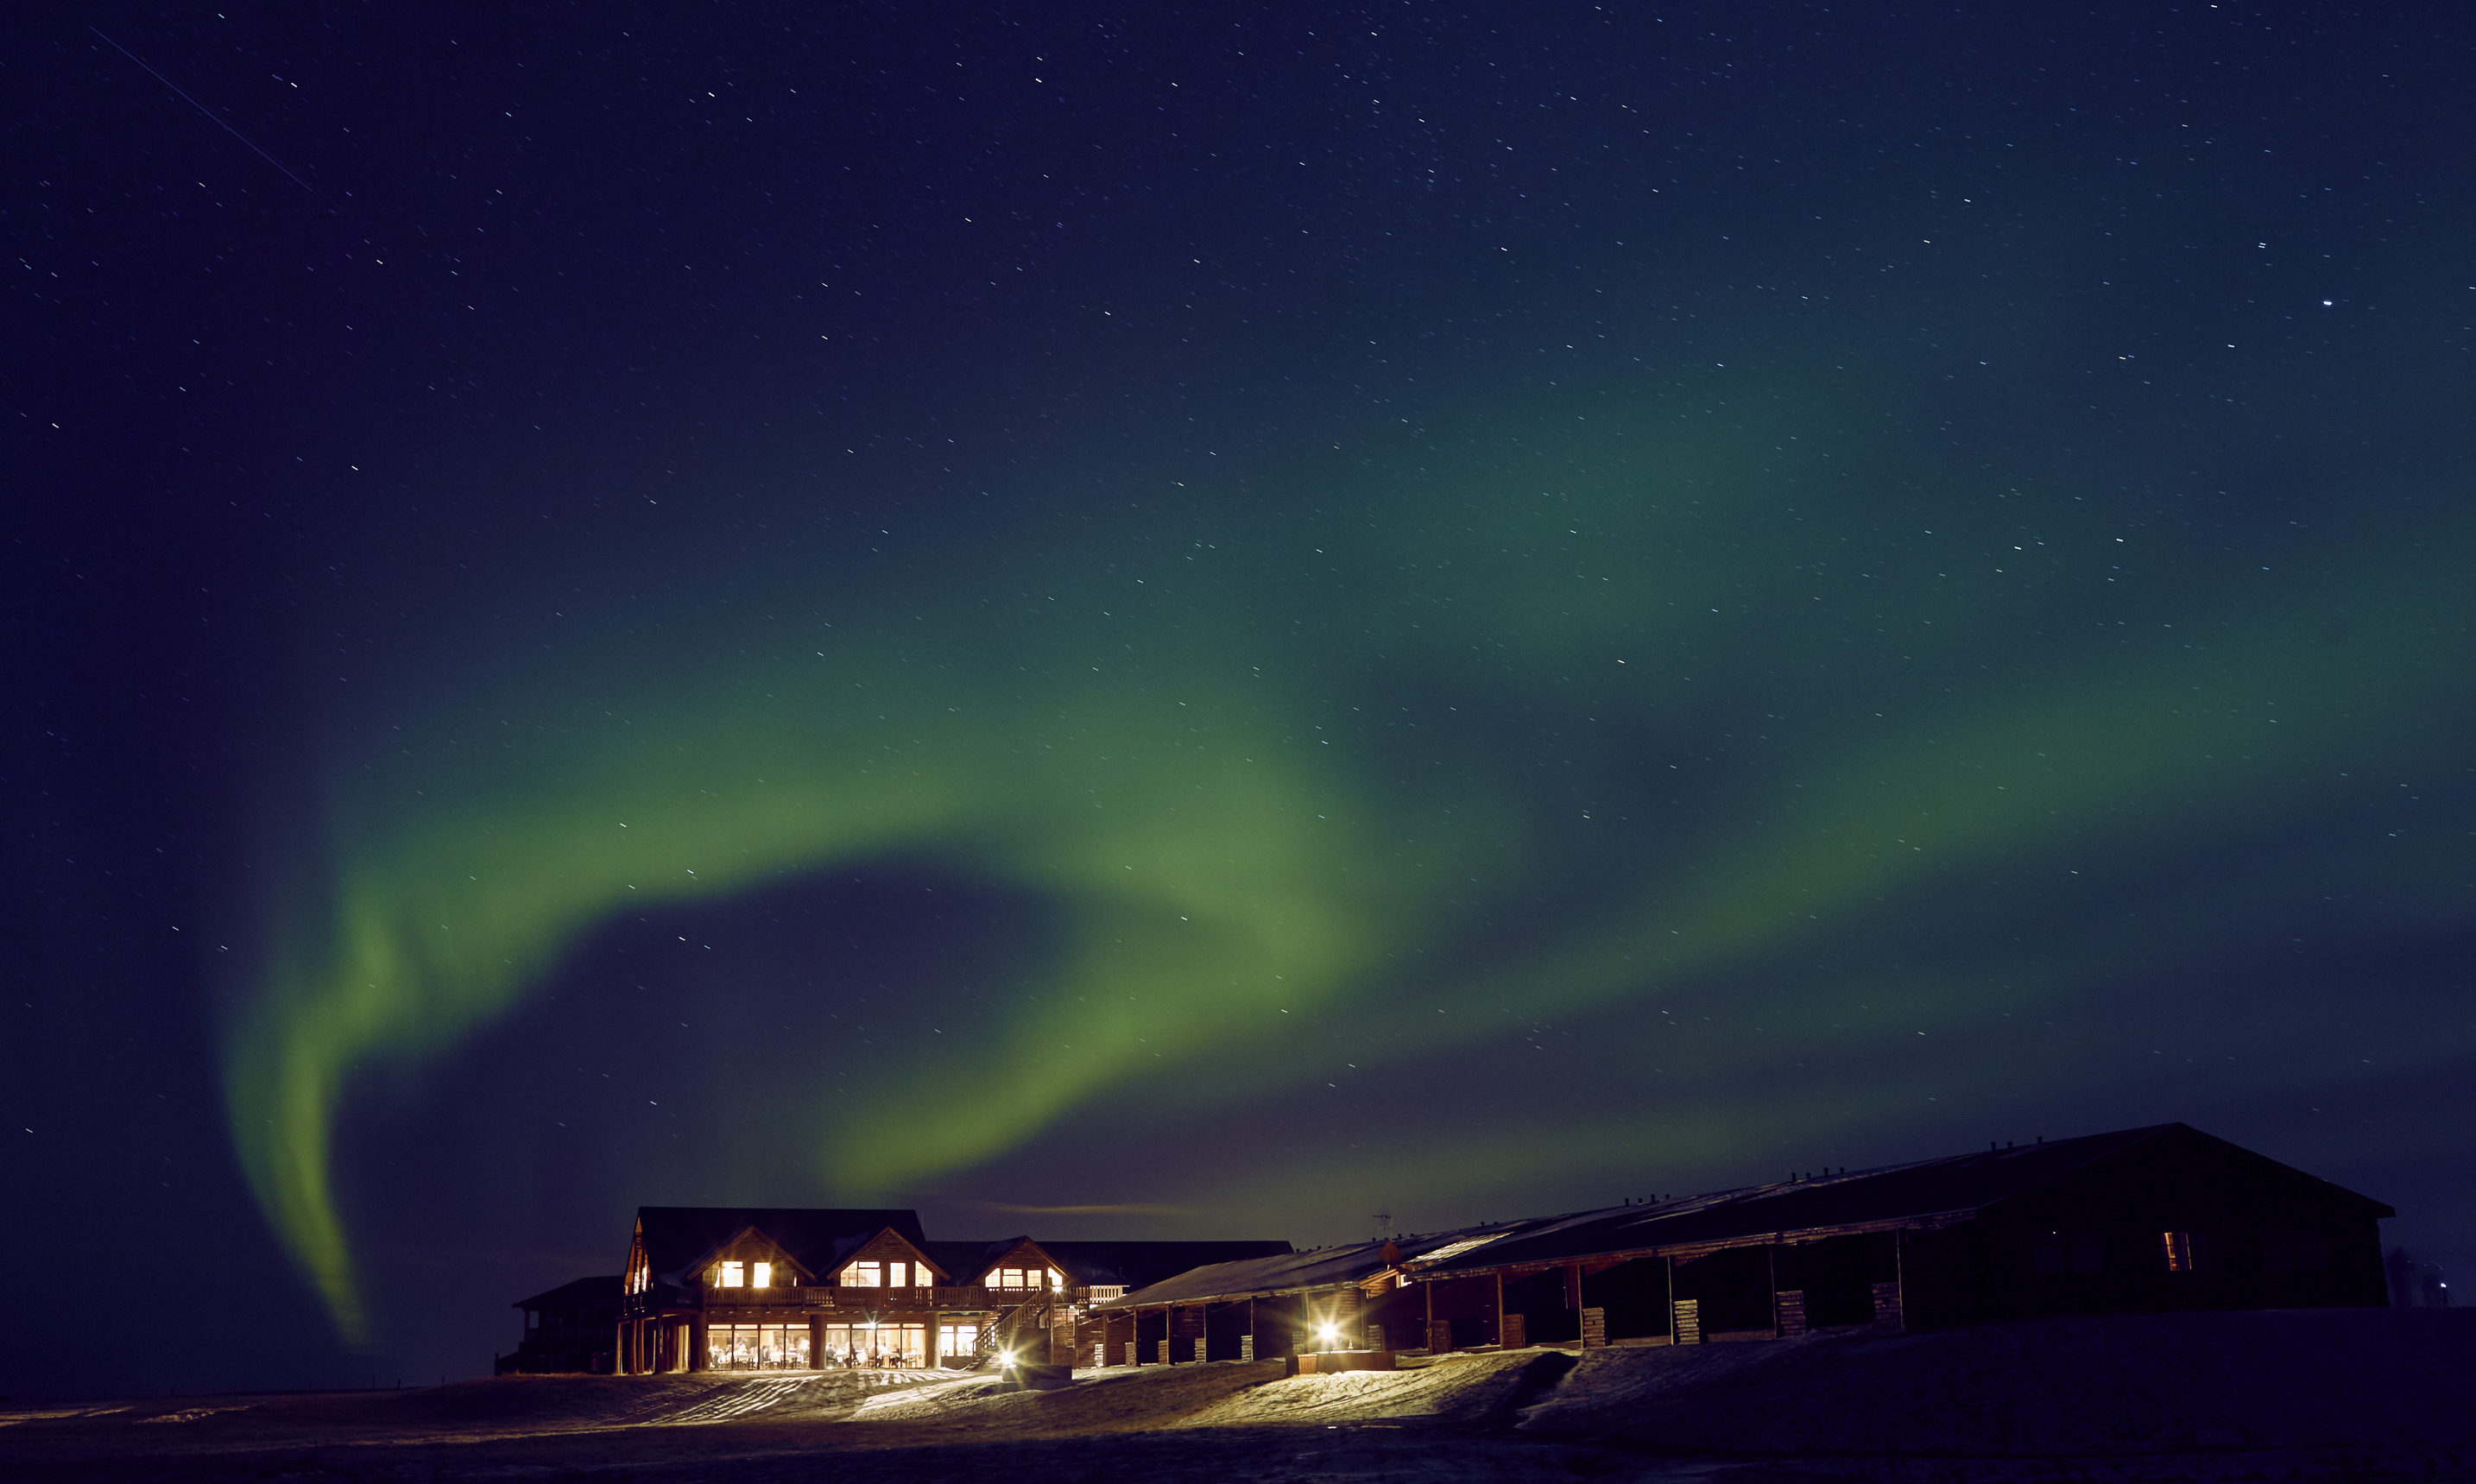 The Hotel Rangá is the ideal base for checking out the beauty of Iceland's natural wonders